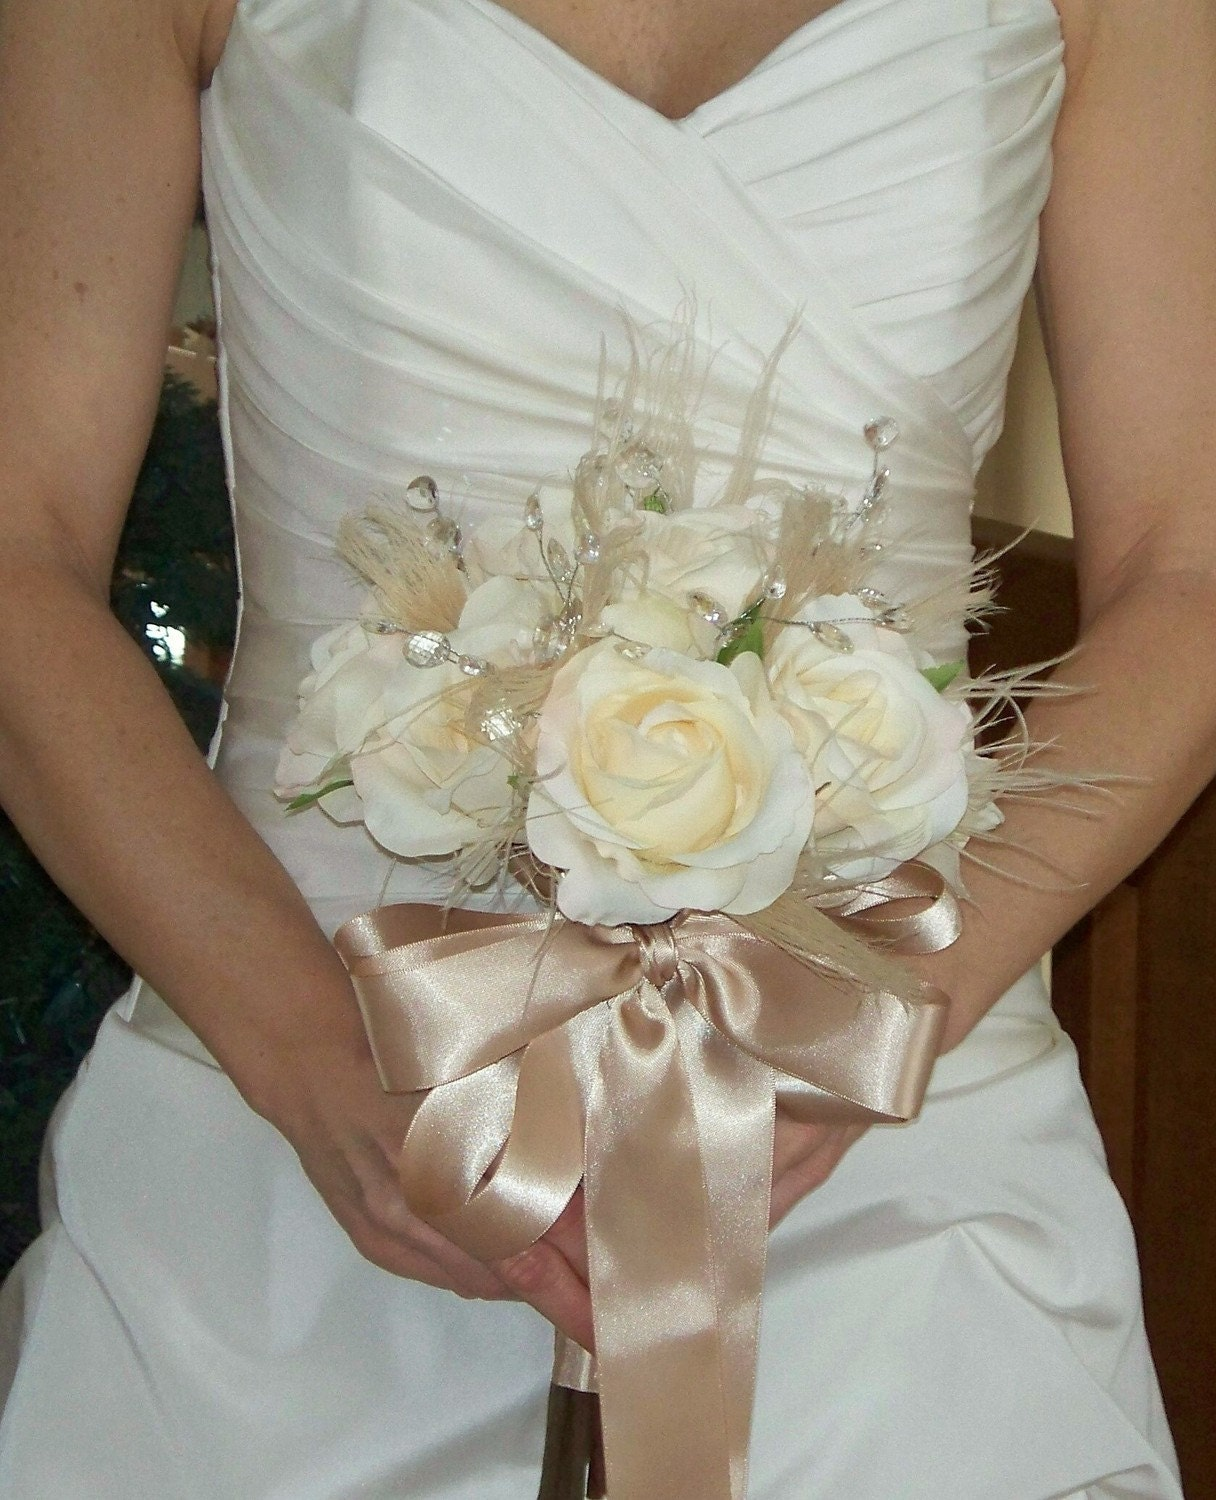 Ivory Bridal Bouquet with Roses, Champagne Peacock Feather Wisps, Sparkling Crystal Accents and FREE Boutonniere - The MANDY